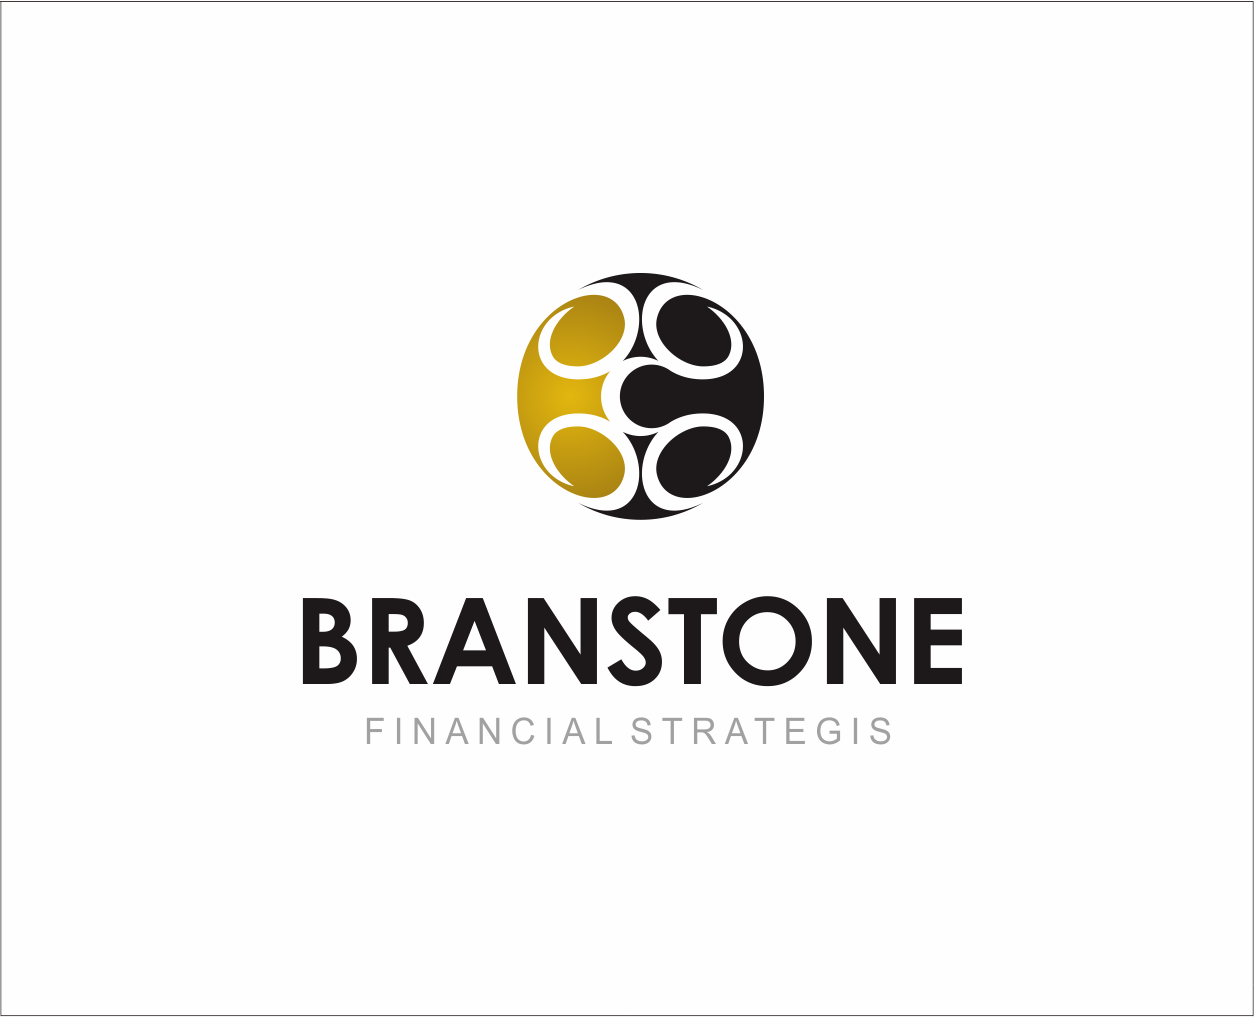 Logo Design by Armada Jamaluddin - Entry No. 172 in the Logo Design Contest Inspiring Logo Design for Branstone Financial Strategies.